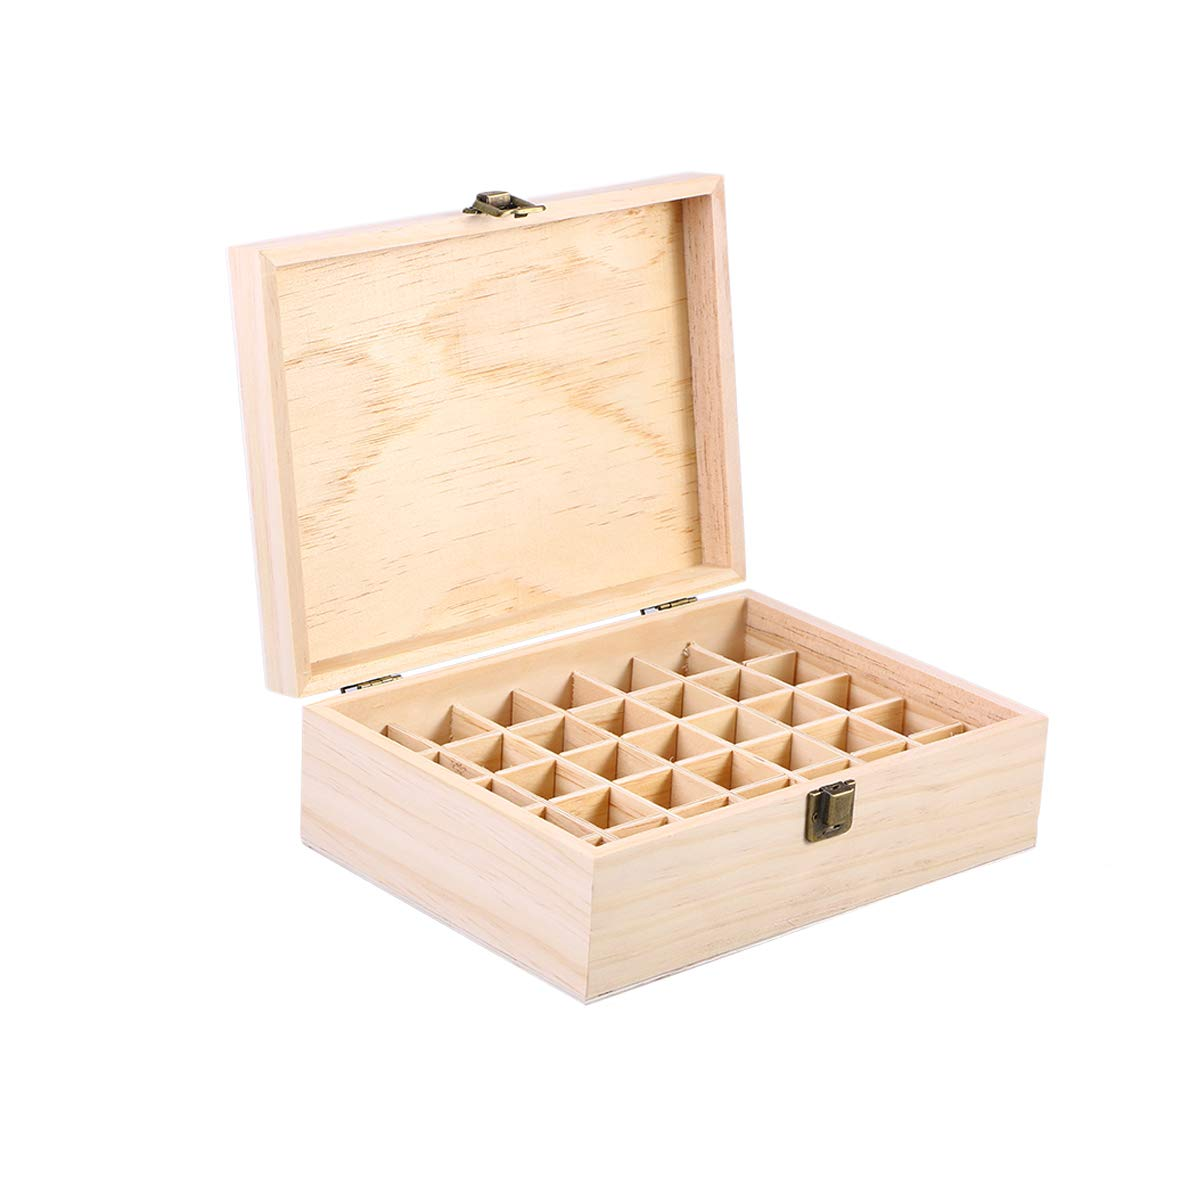 Lurrose 35 Slots Wooden Essential Oil Box, Holds 5ml-15ml Roller Bottles Organizer Storage Case Decorative Boxes